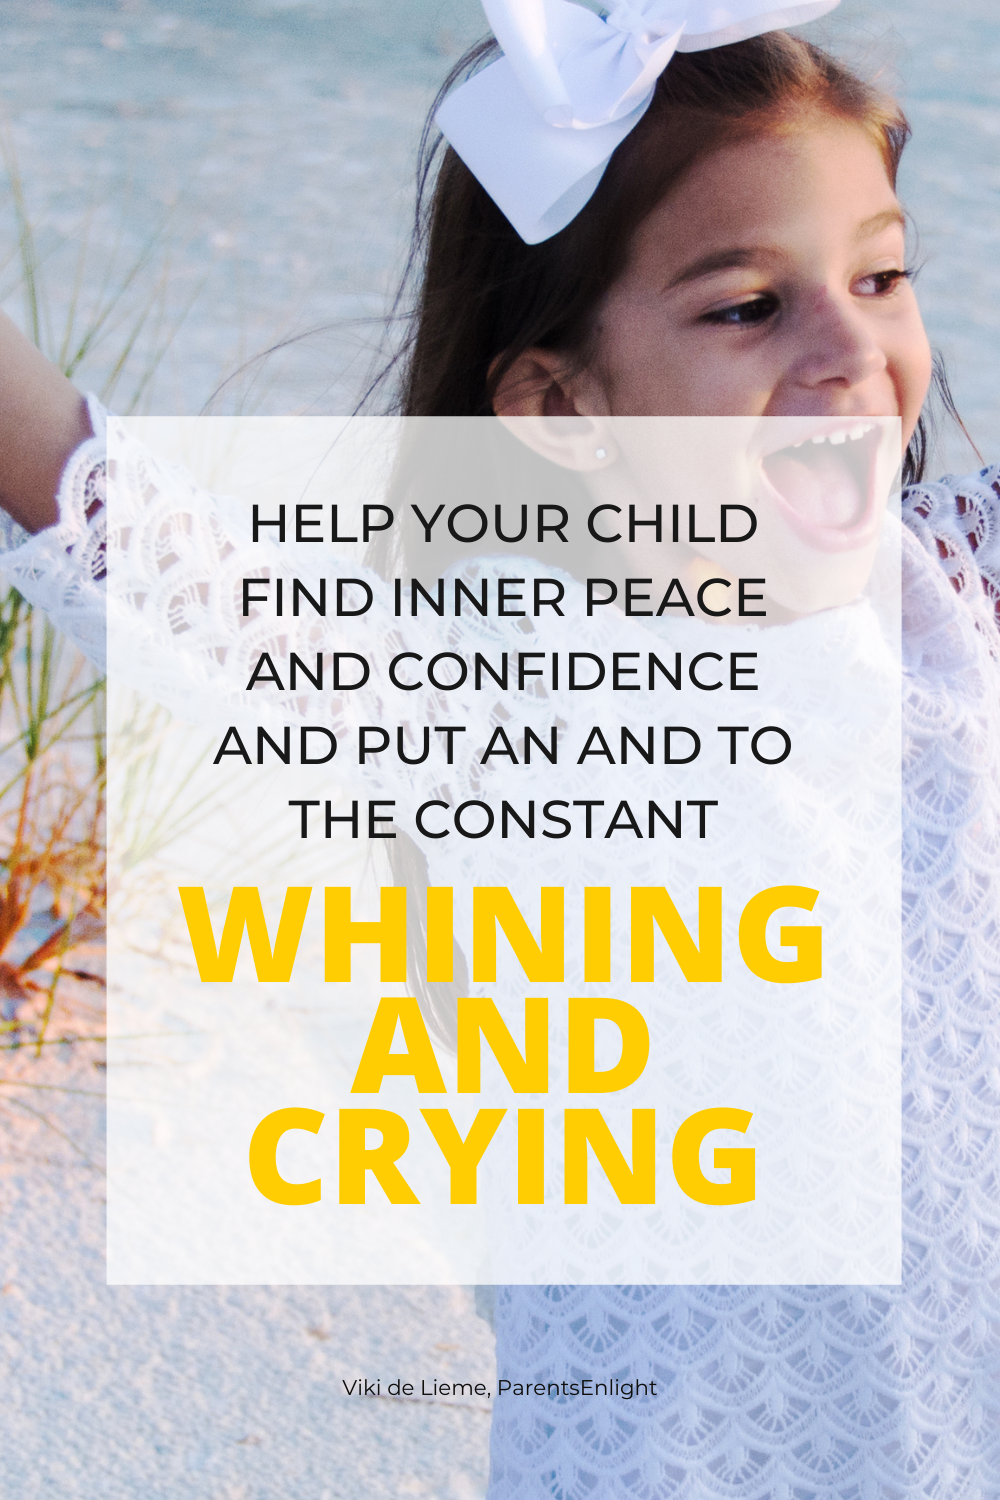 Every parents is familiar with the constant whining and crying children often communicate through. Our reactions don't really help put an end to this. Here's how we can #positiveparenting #mindfulparenting #mindfulness #peacefulparenting #stopyelling #parenting #parentinghelp #parenting101